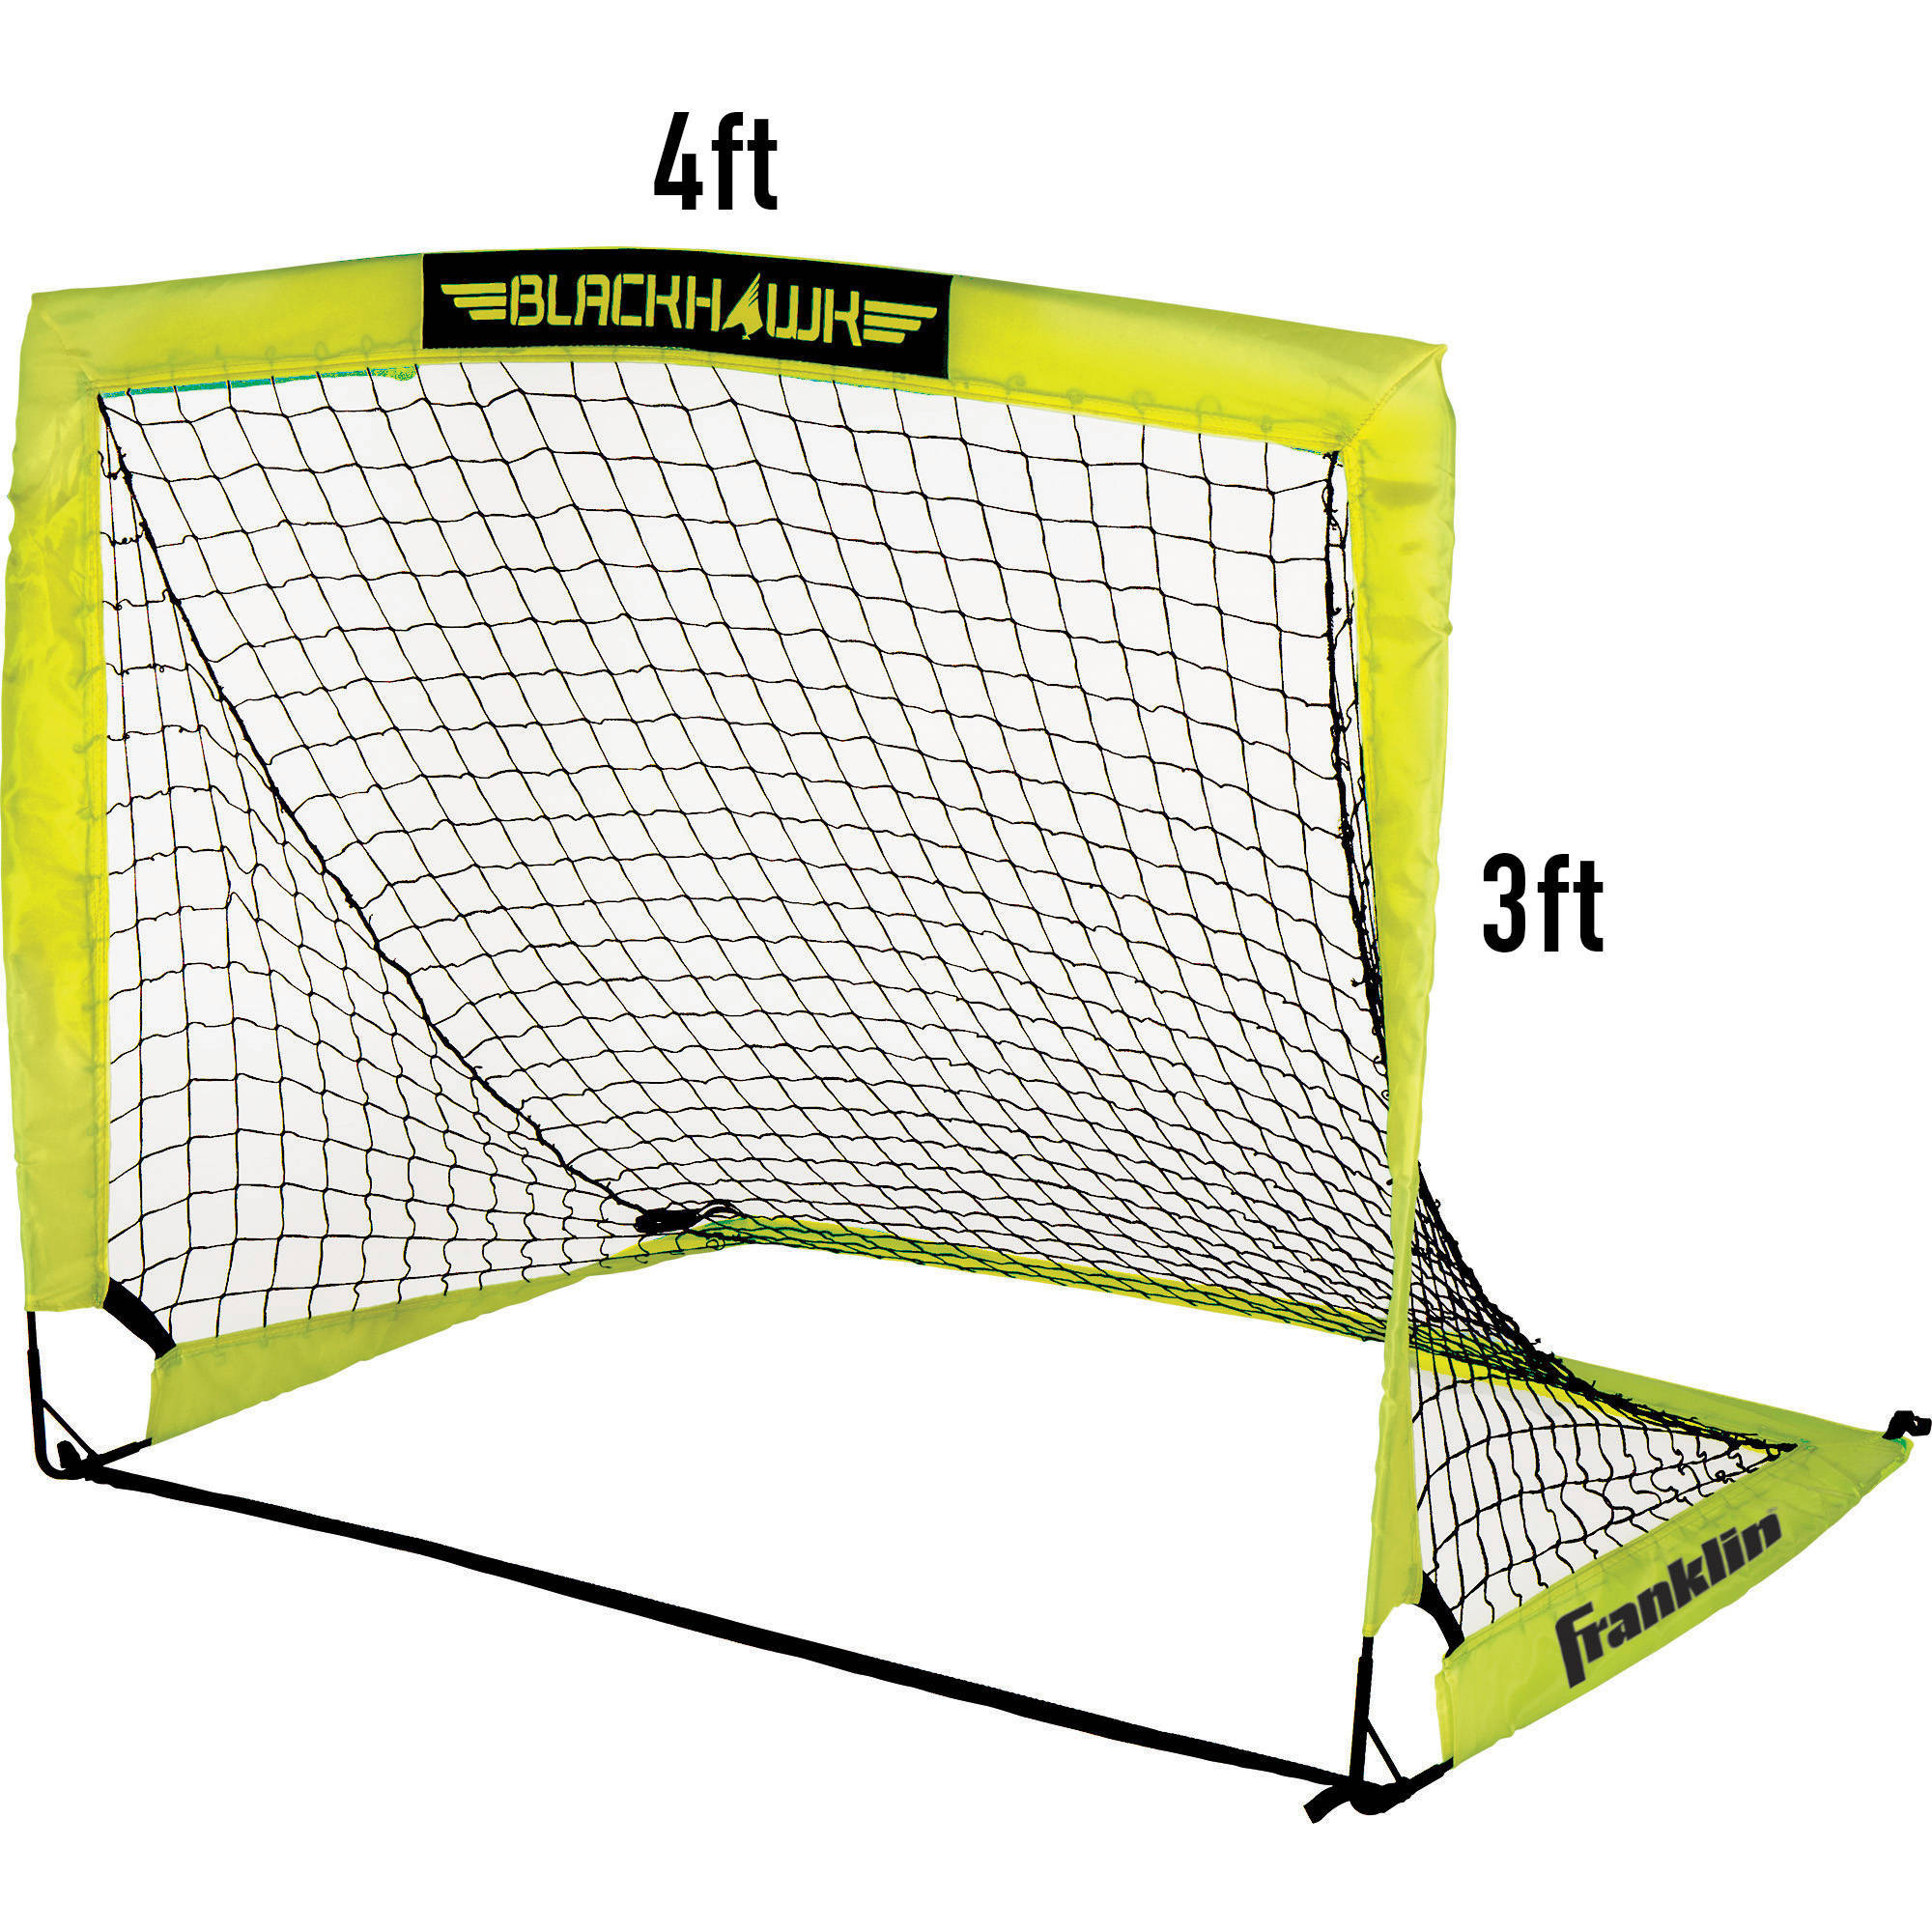 Franklin Sports 9' x 5' Blackhawk Portable Soccer Goal